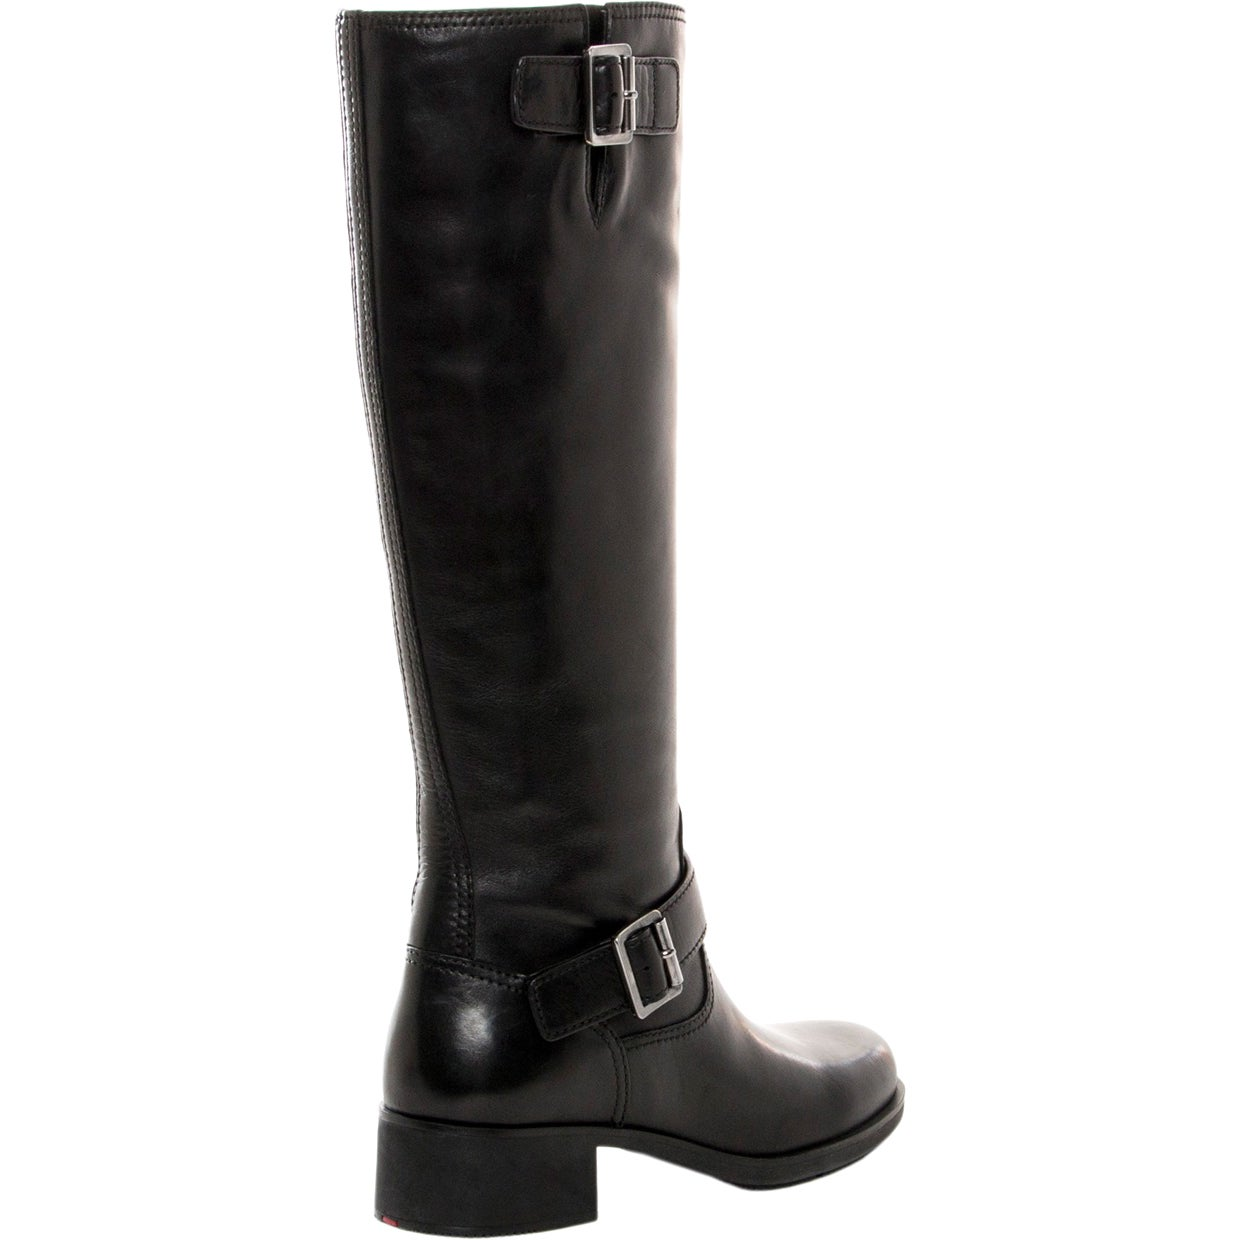 0f9d1afe8b3 Shop Prada Buckle Detail Knee-High Leather Boots - Free Shipping Today -  Overstock - 9652632